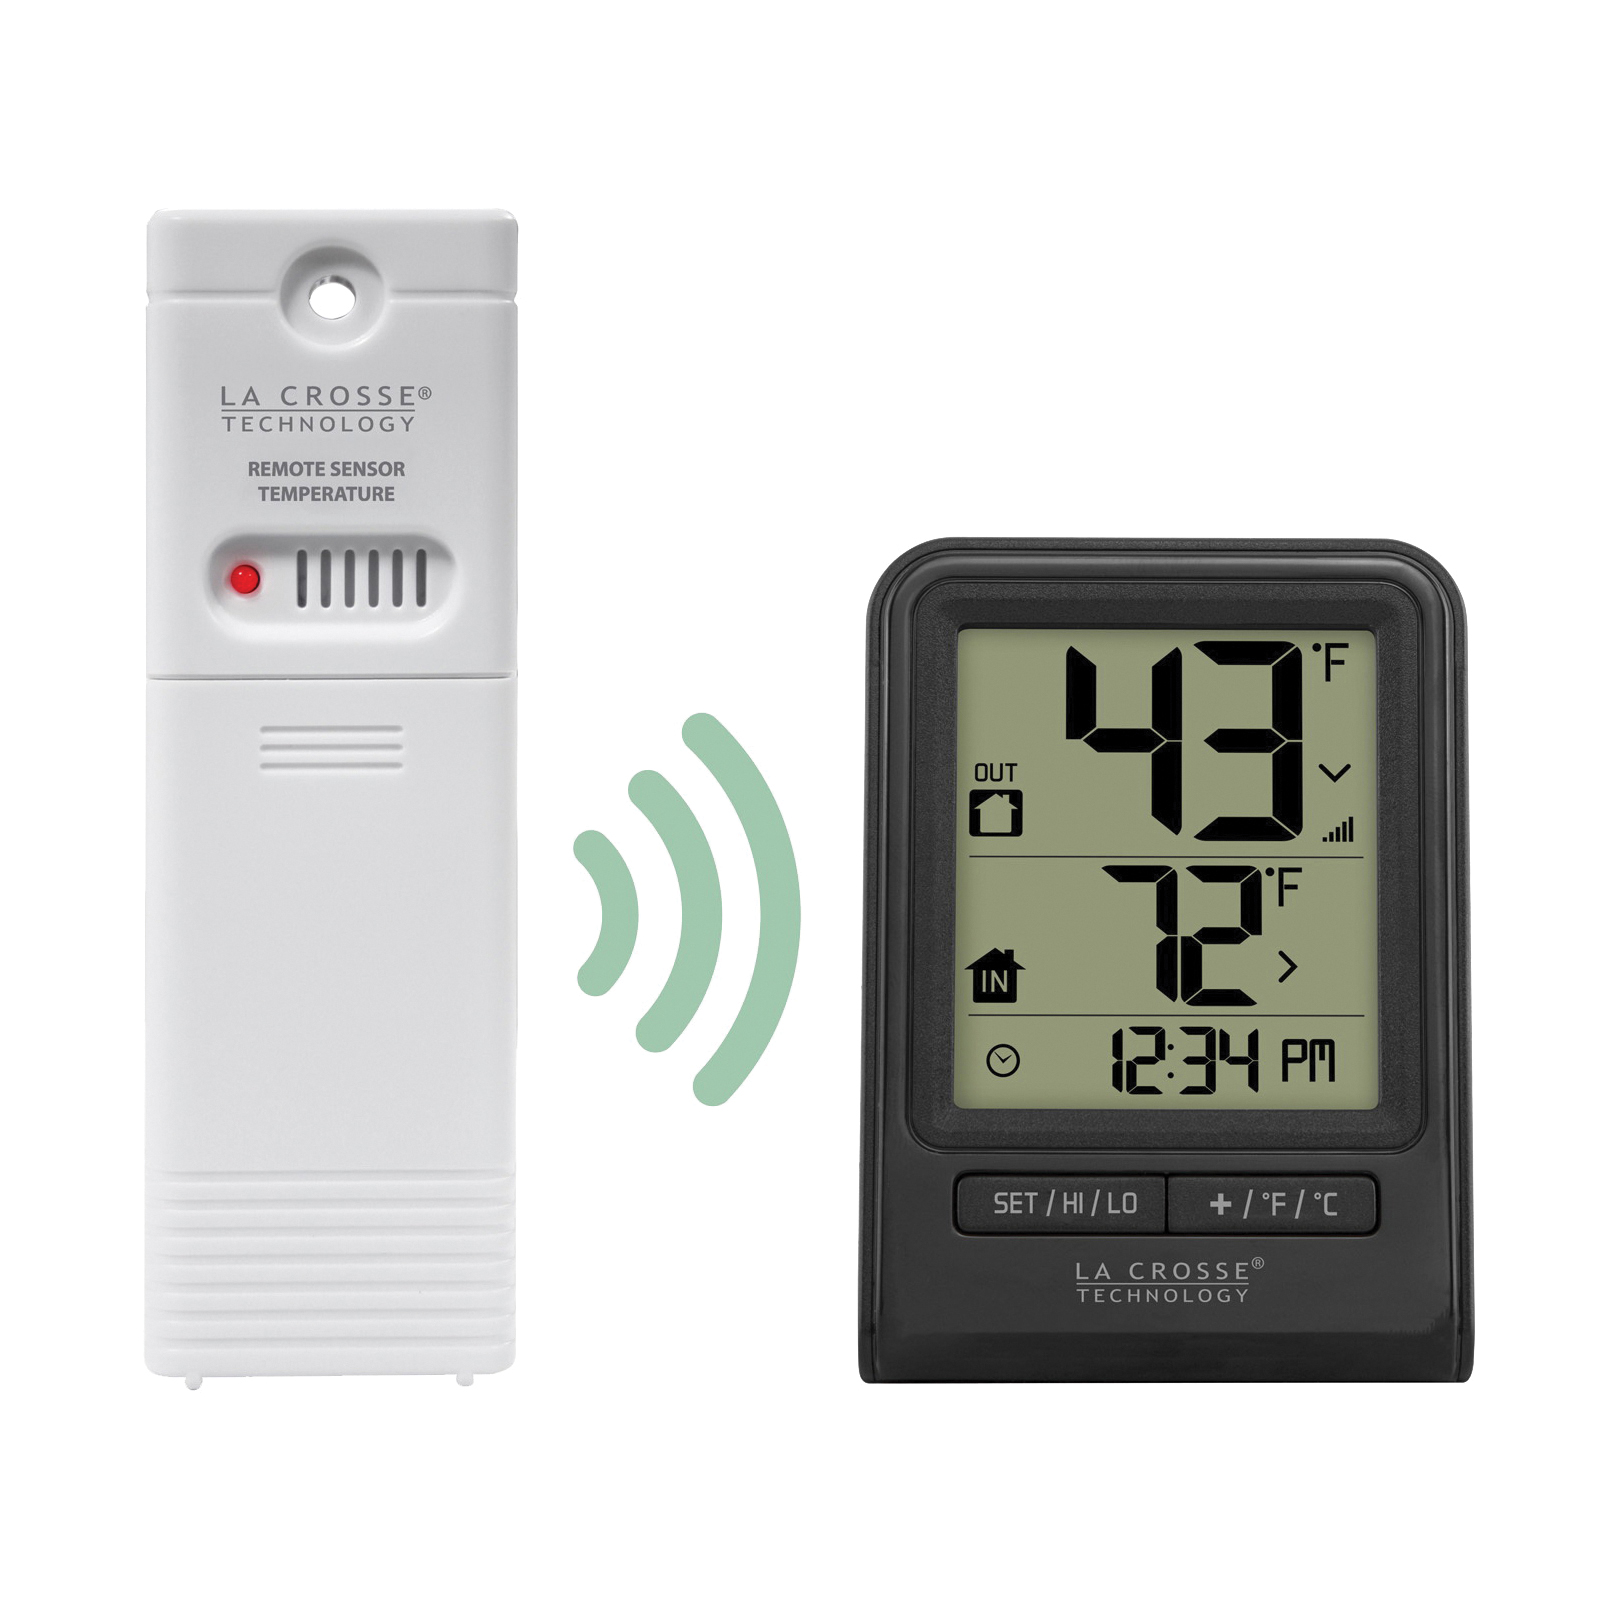 Picture of La Crosse 308-1409BT-CBP Wireless Thermometer, 2.63 in L x 1.35 in W x 3.67 in H Display, 32 to 122 deg F